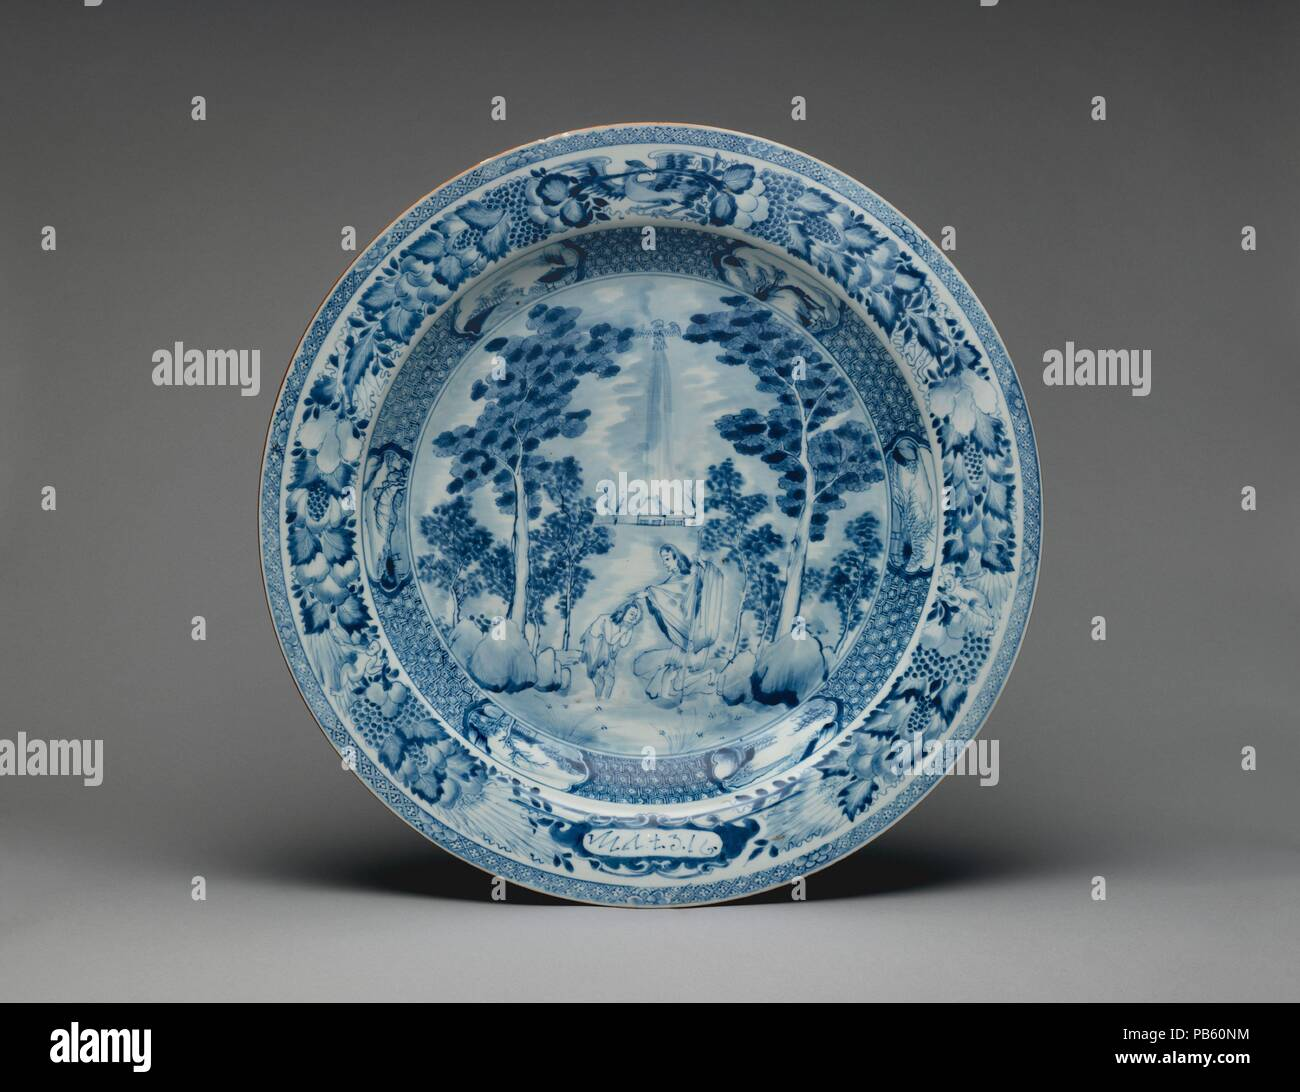 Dish With John The Baptist Culture Chinese Made For Export